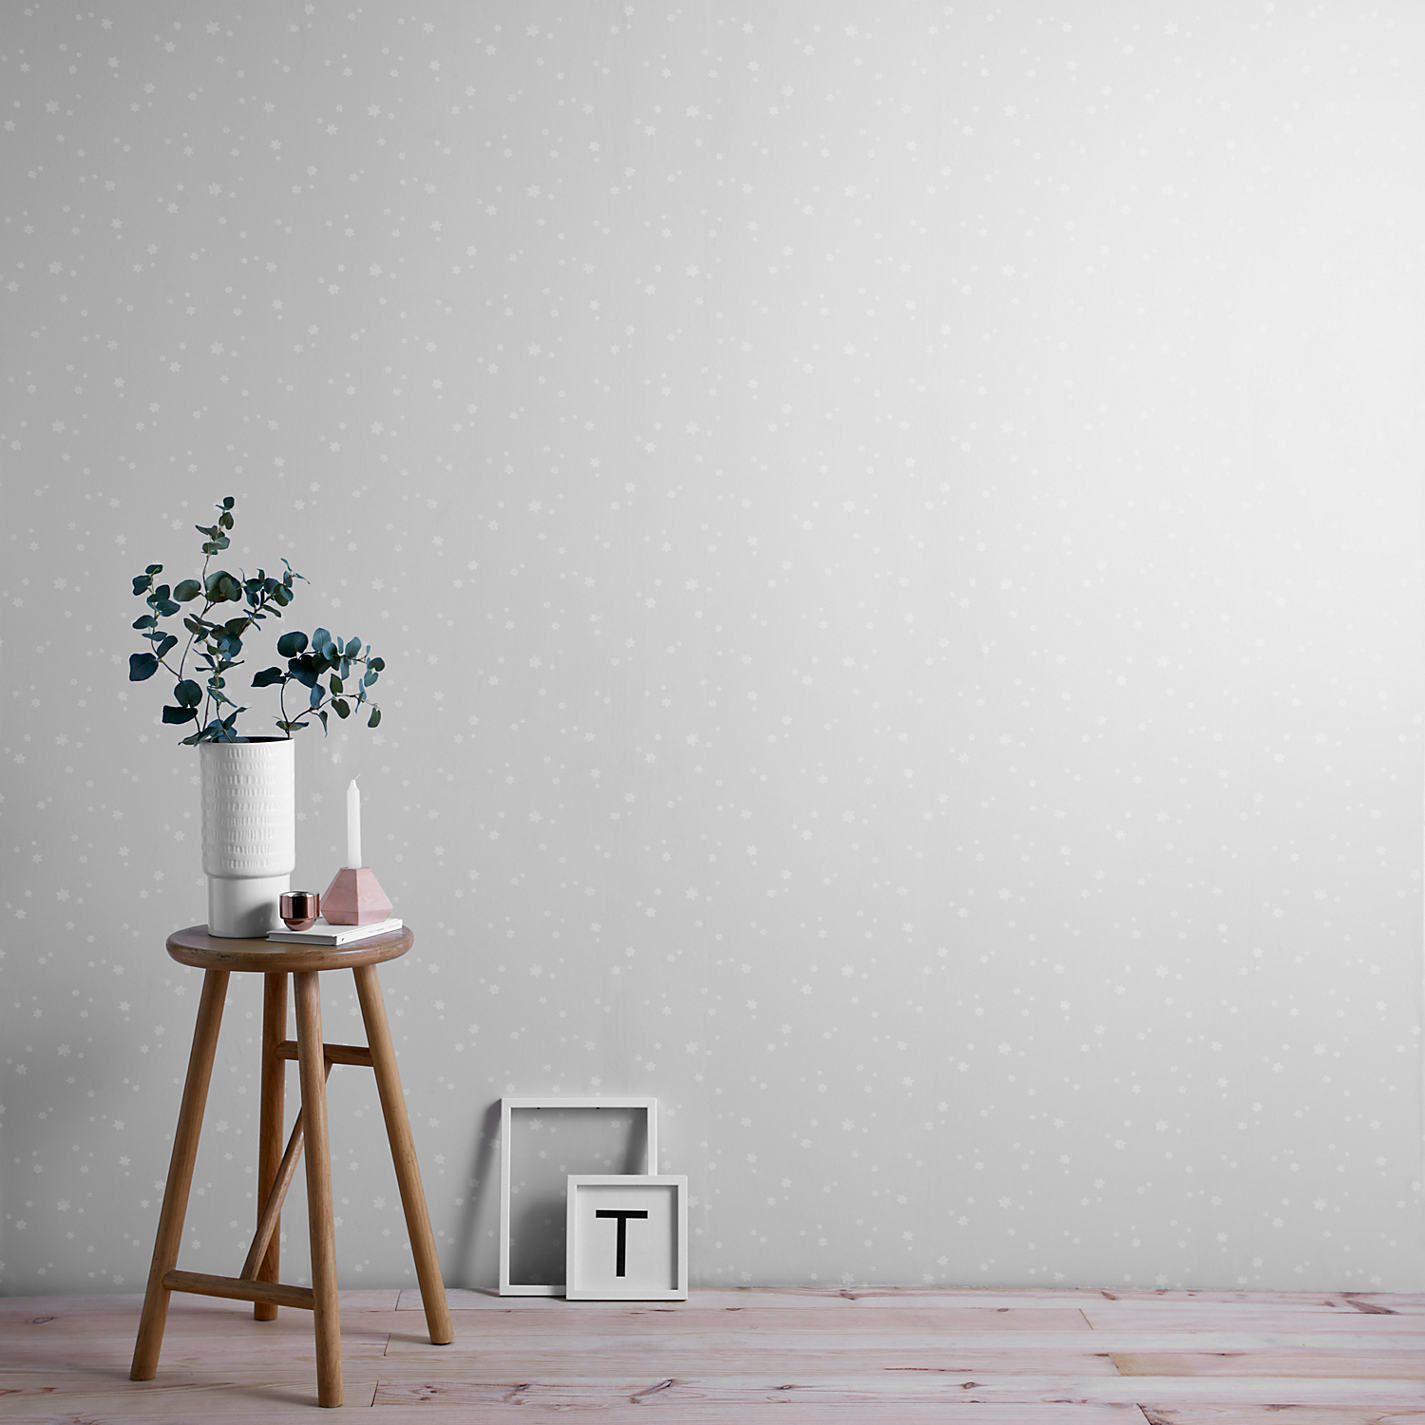 Buy john lewis twinkle wallpaper grey john lewis buy john lewis twinkle wallpaper grey online at johnlewis gumiabroncs Images